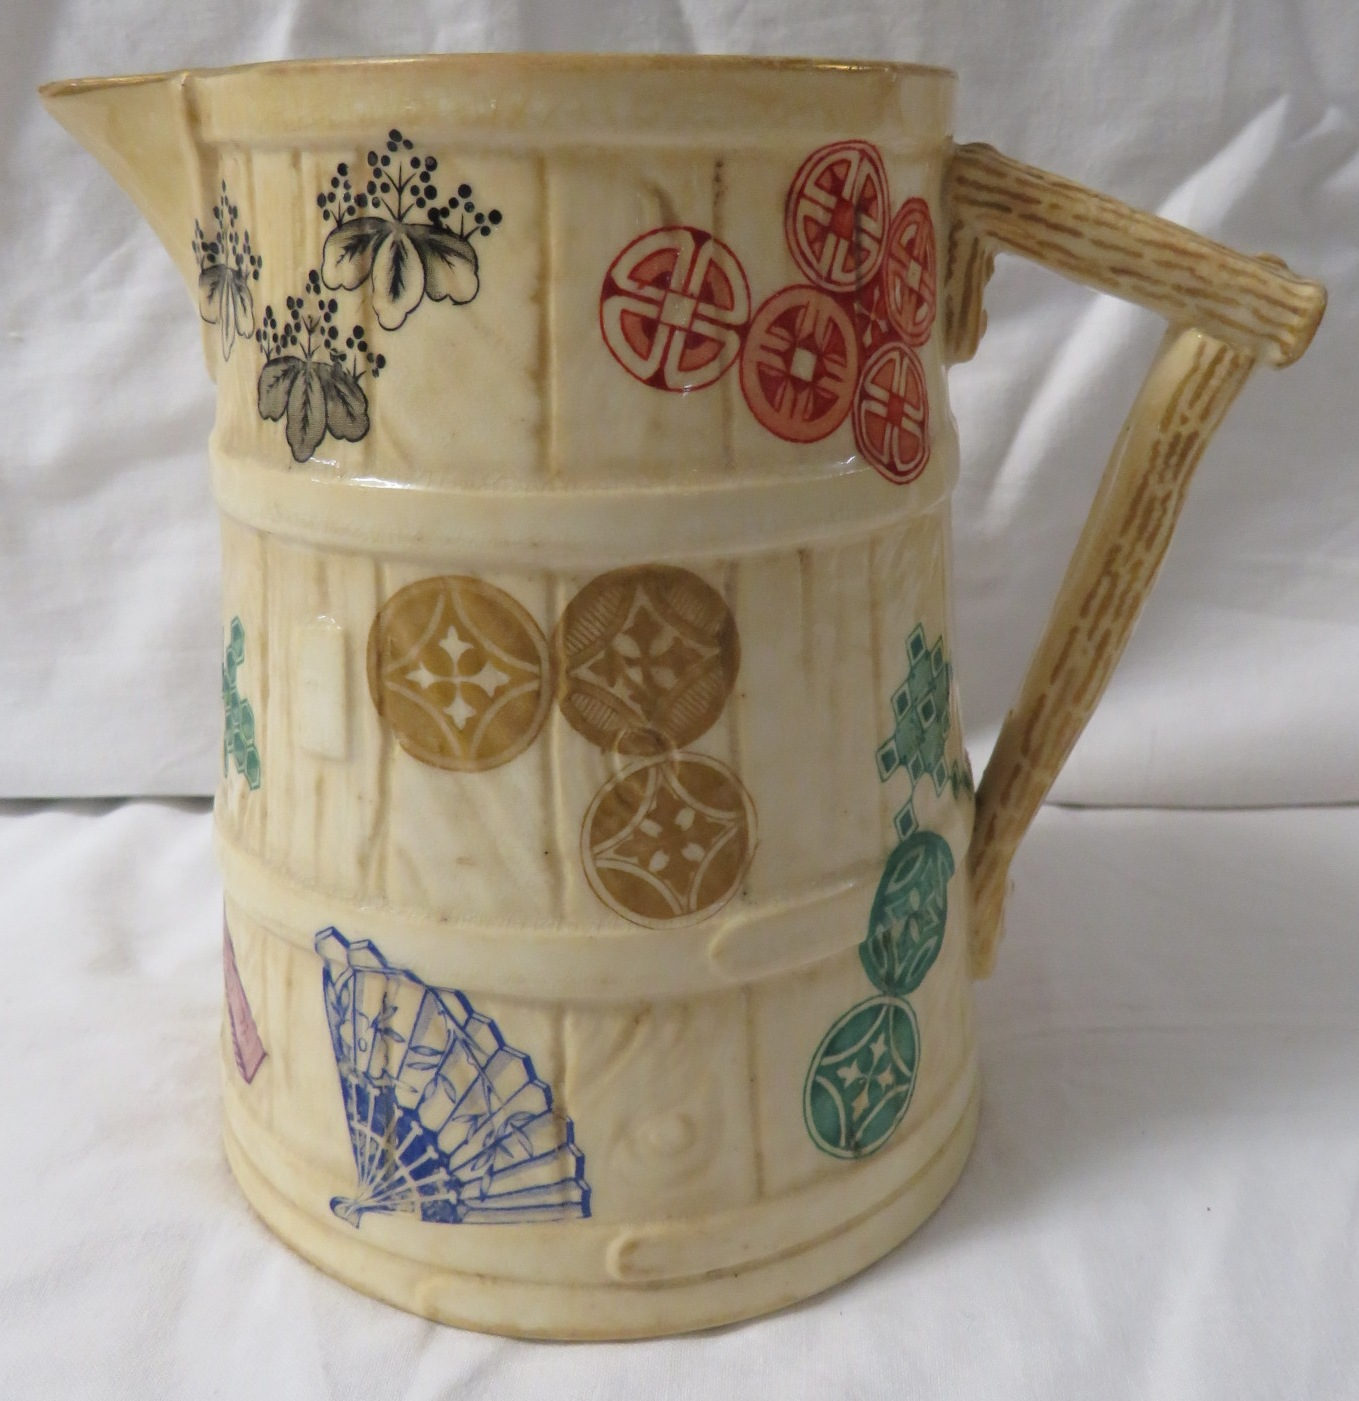 Lot 43 - Royal Worcester Aesthetic style jug with Japanese emblems, handle moulded as wood, green factory